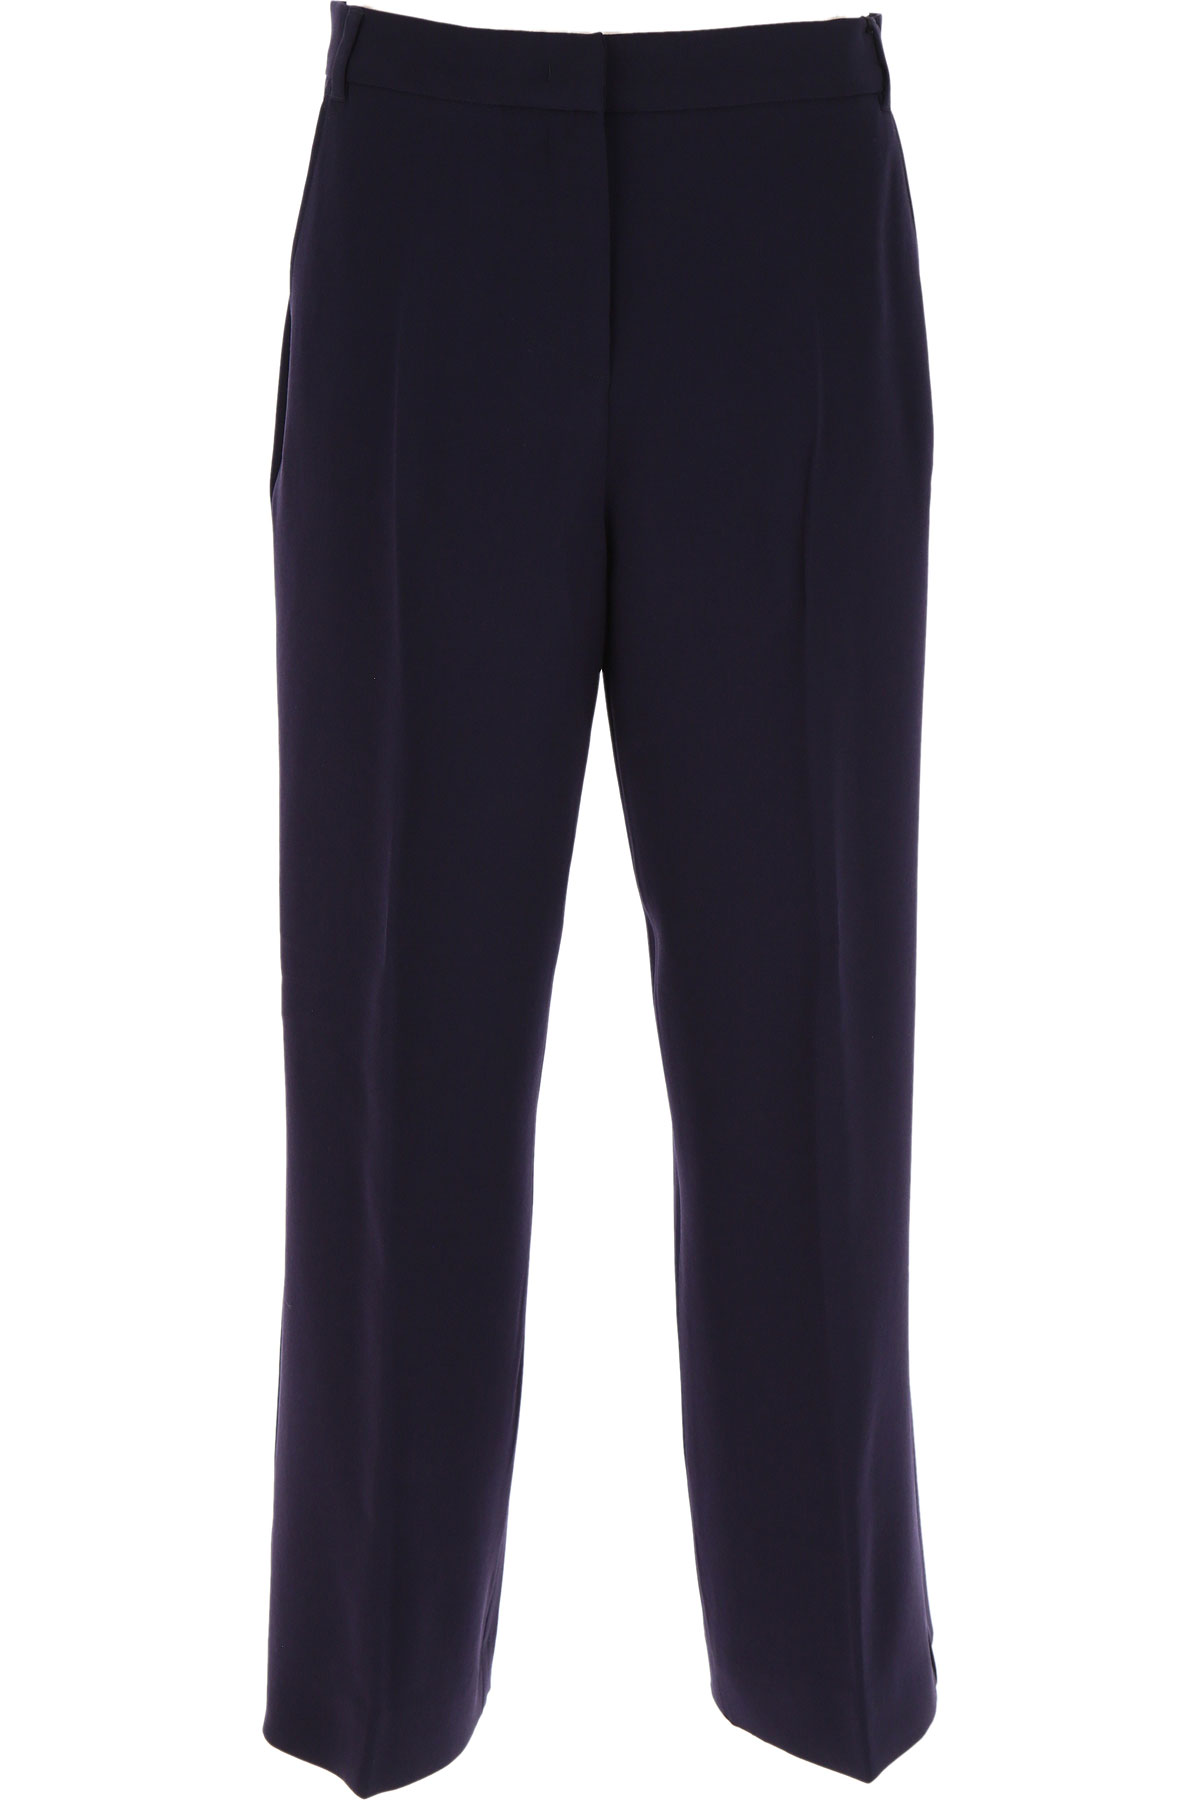 Max Mara Pants for Women On Sale, Navy Blue, acetate, 2019, 30 34 8